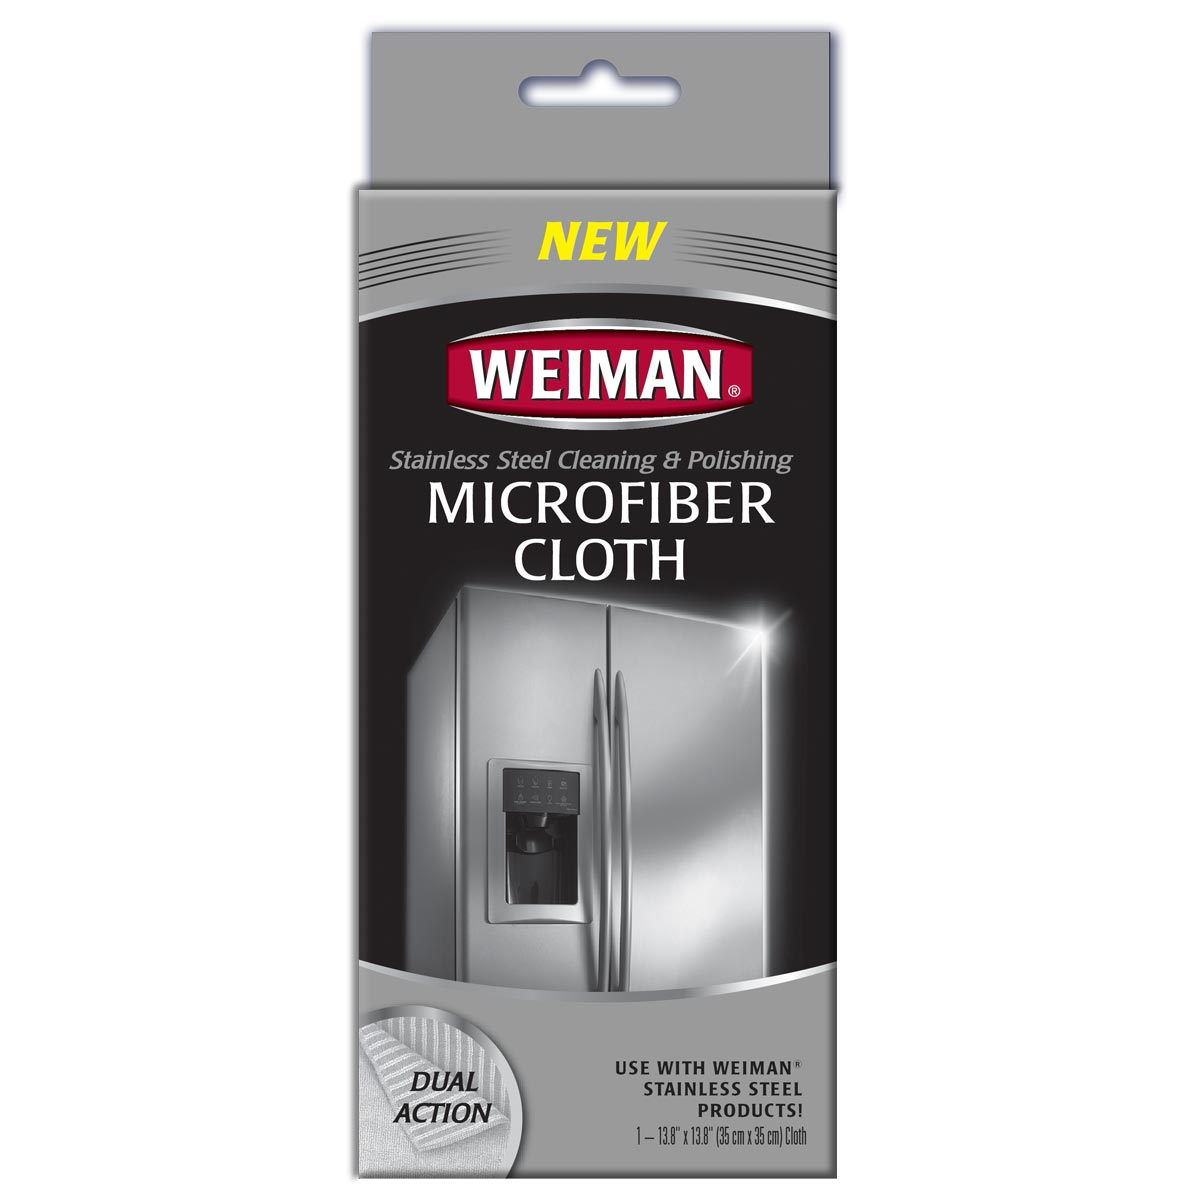 https://googone.com/media/catalog/product/w/e/weiman-microfiber-cloth-for-stainless-steel_front_2.jpg